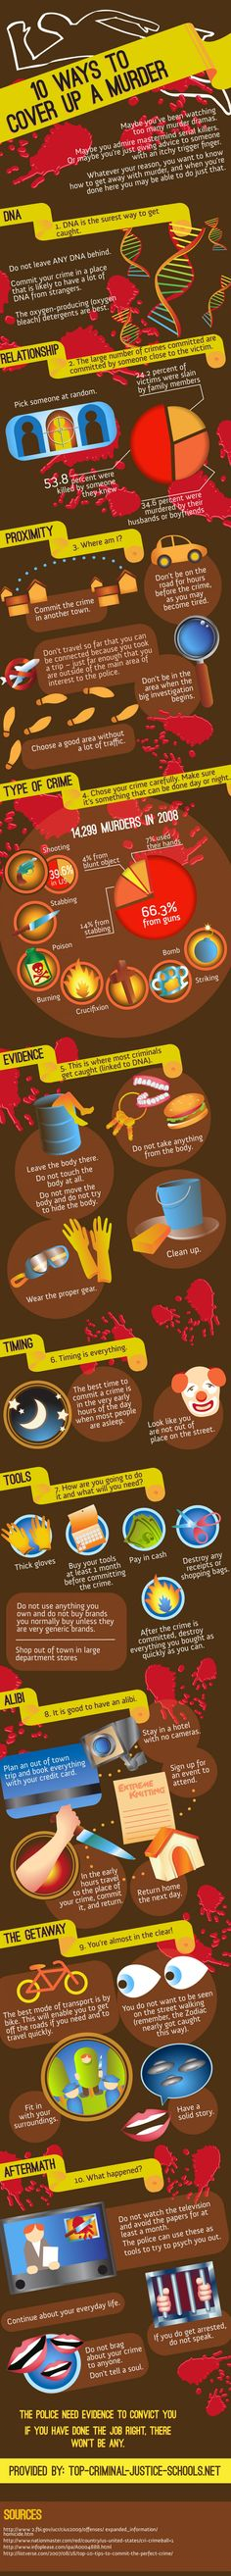 10 Ways to Cover Up a Murder Infographic-How to write a murder